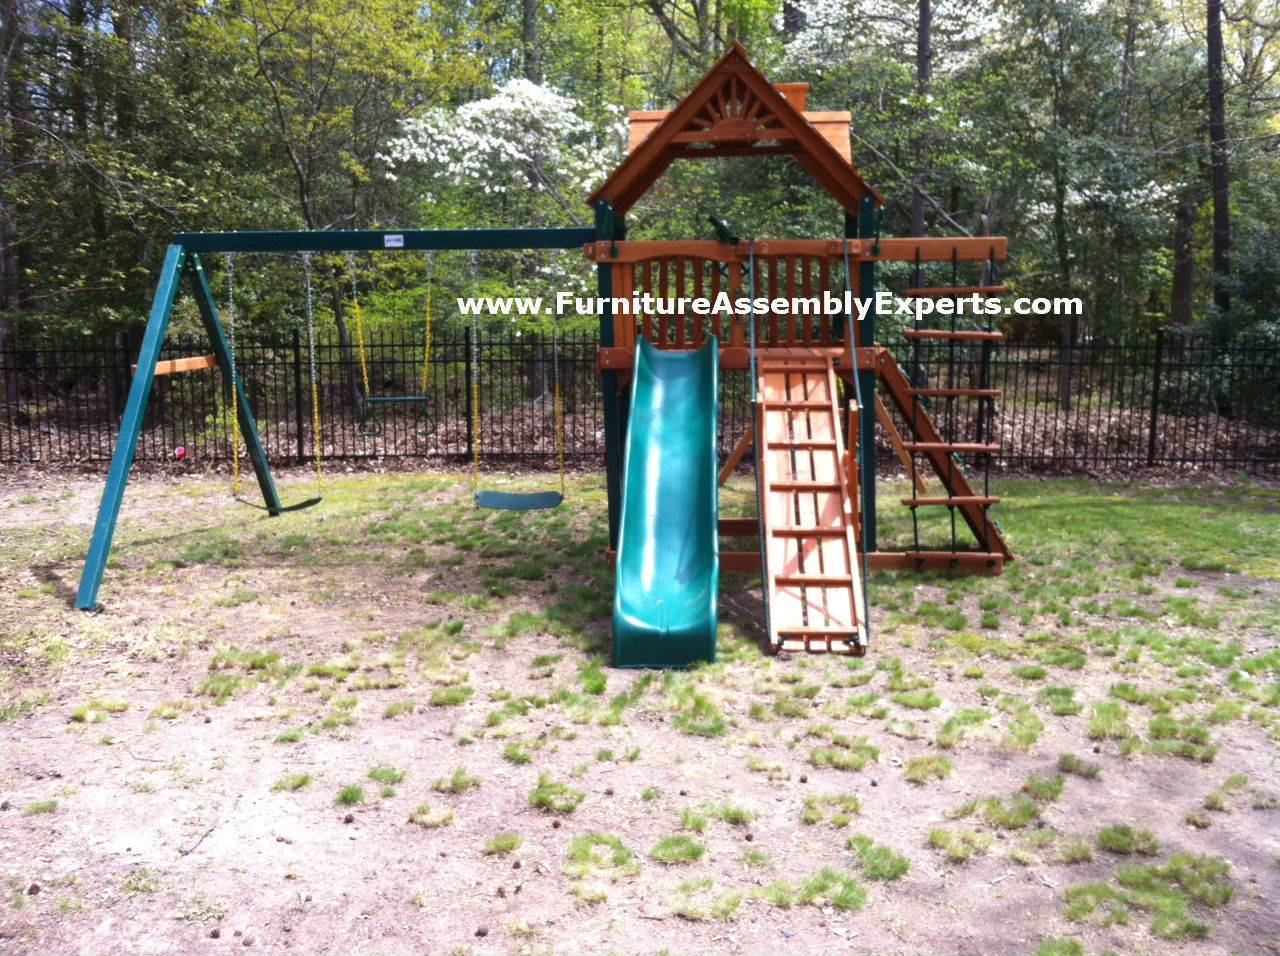 gorilla swing set assembly service in Washington DC